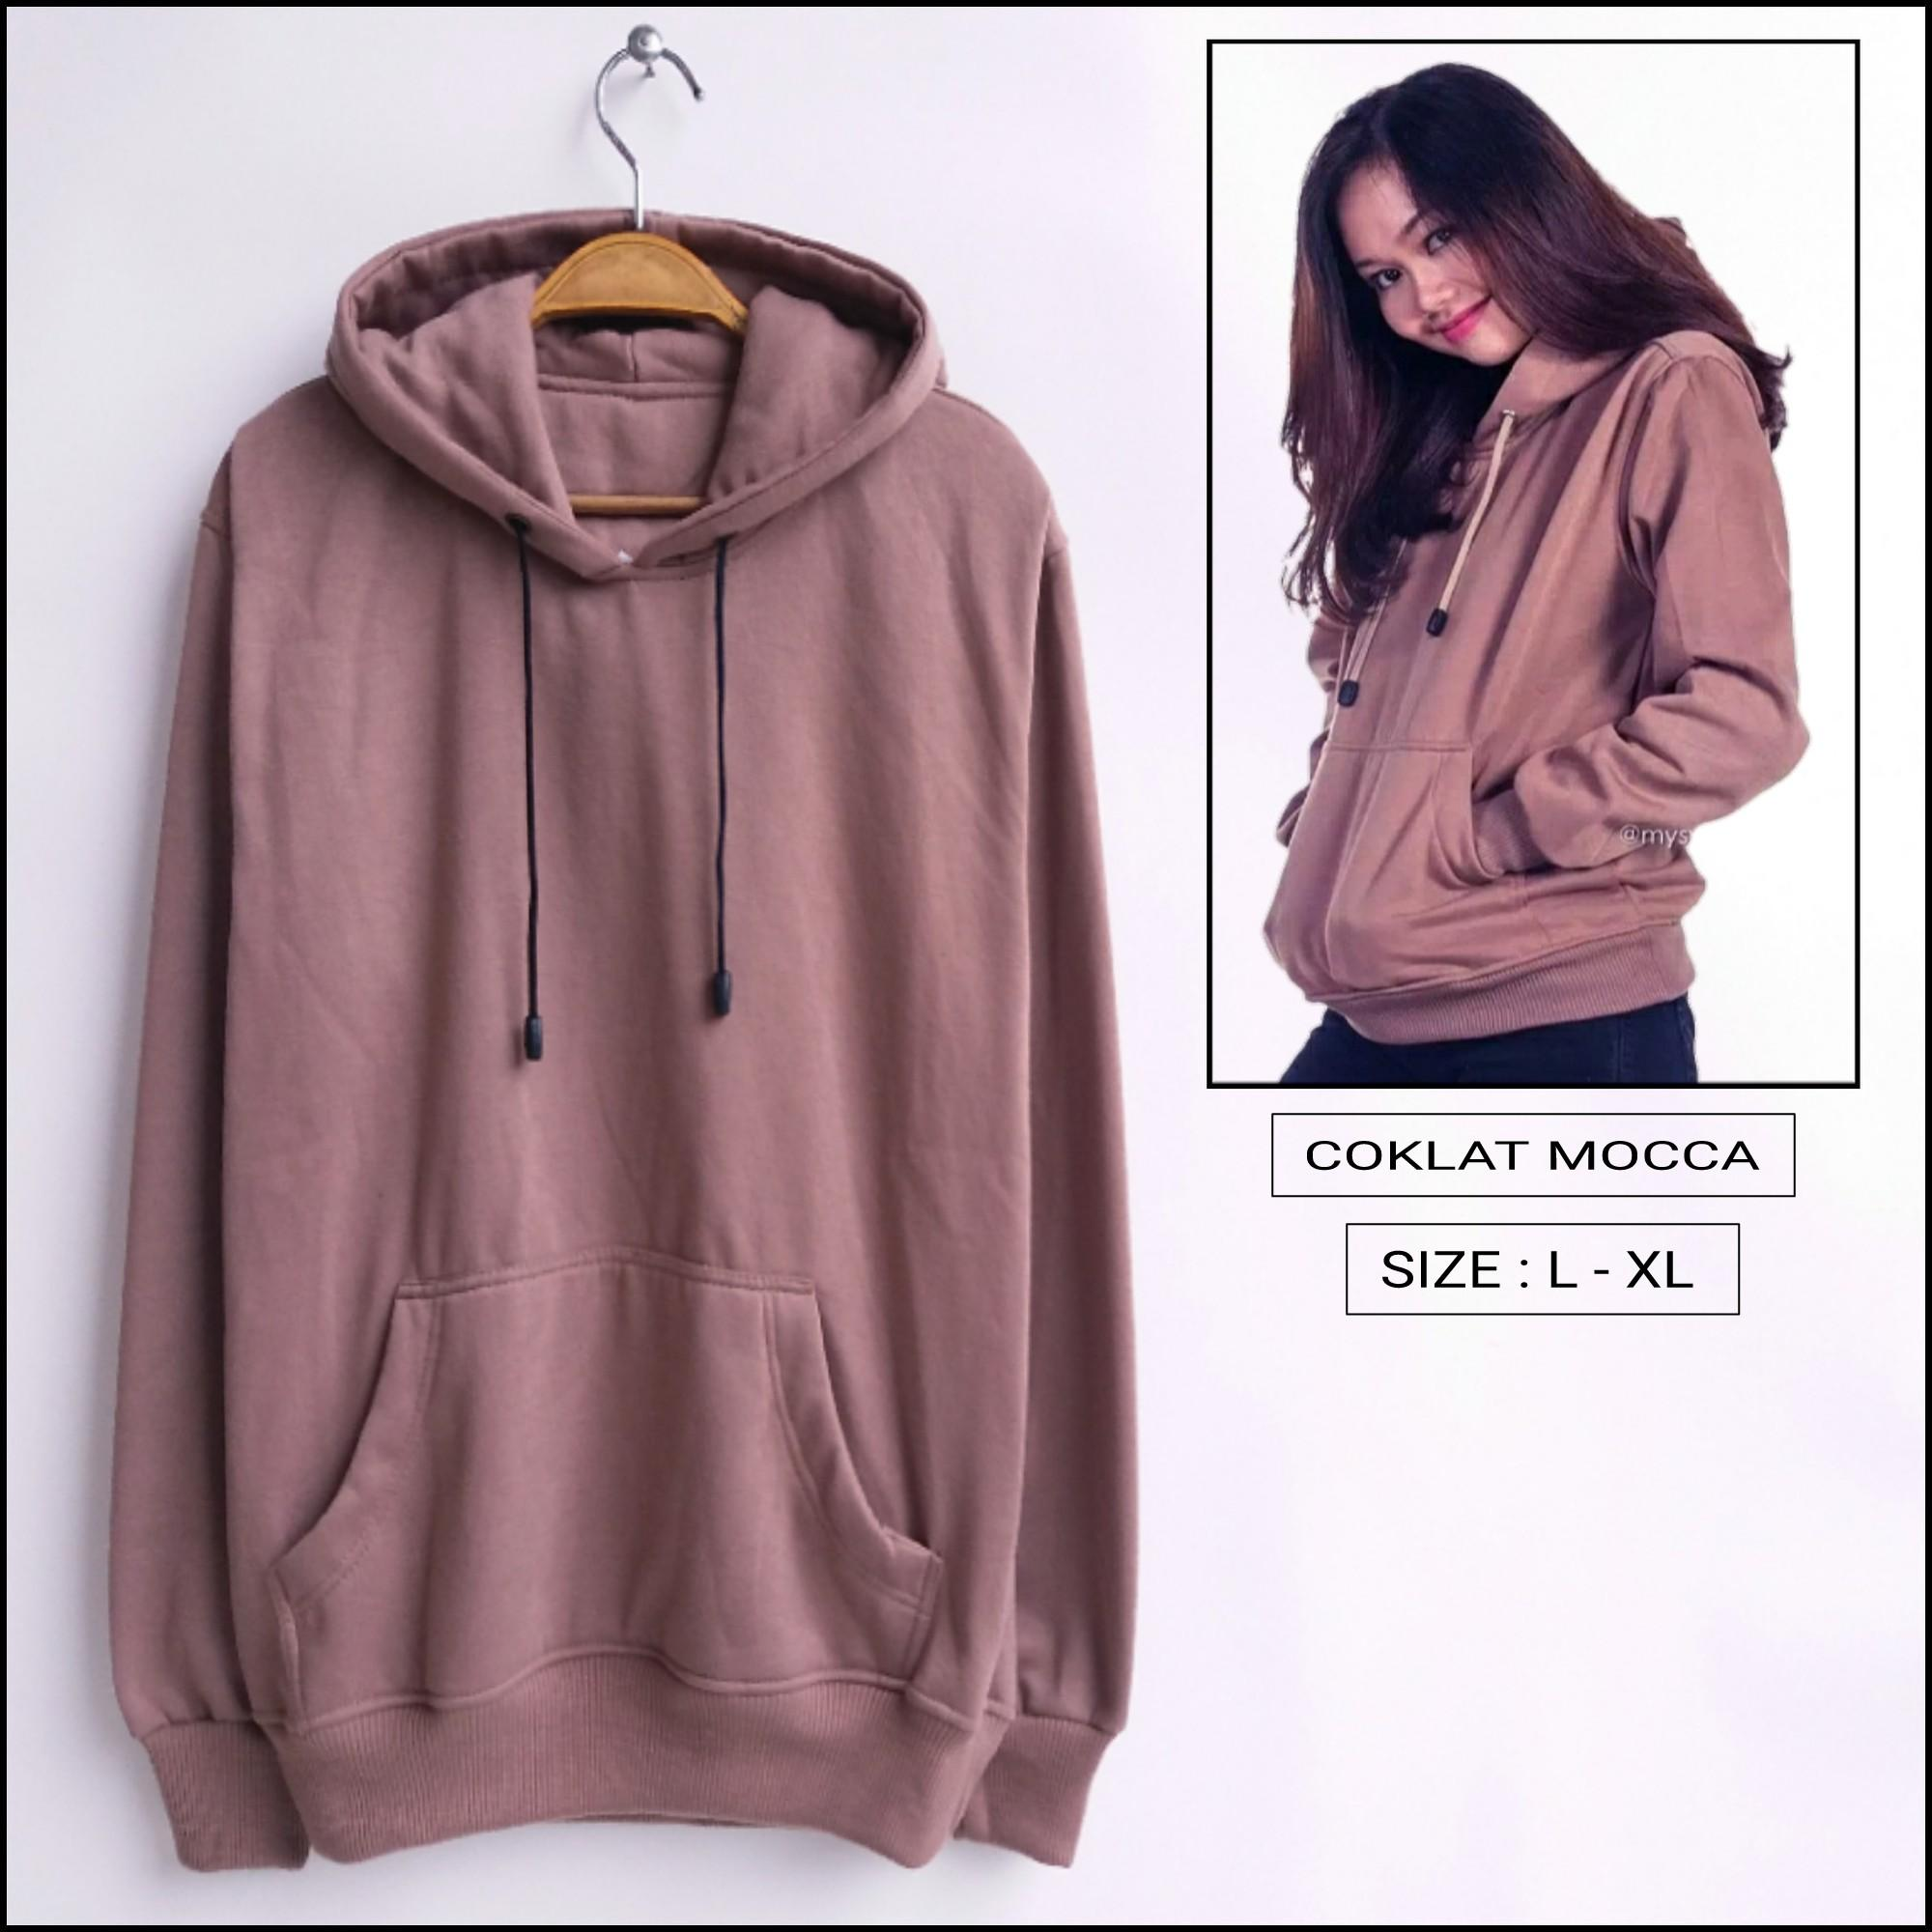 SWEATER HOODIE JUMPER POLOS COKLAT MOCCA 5c745ea3bc